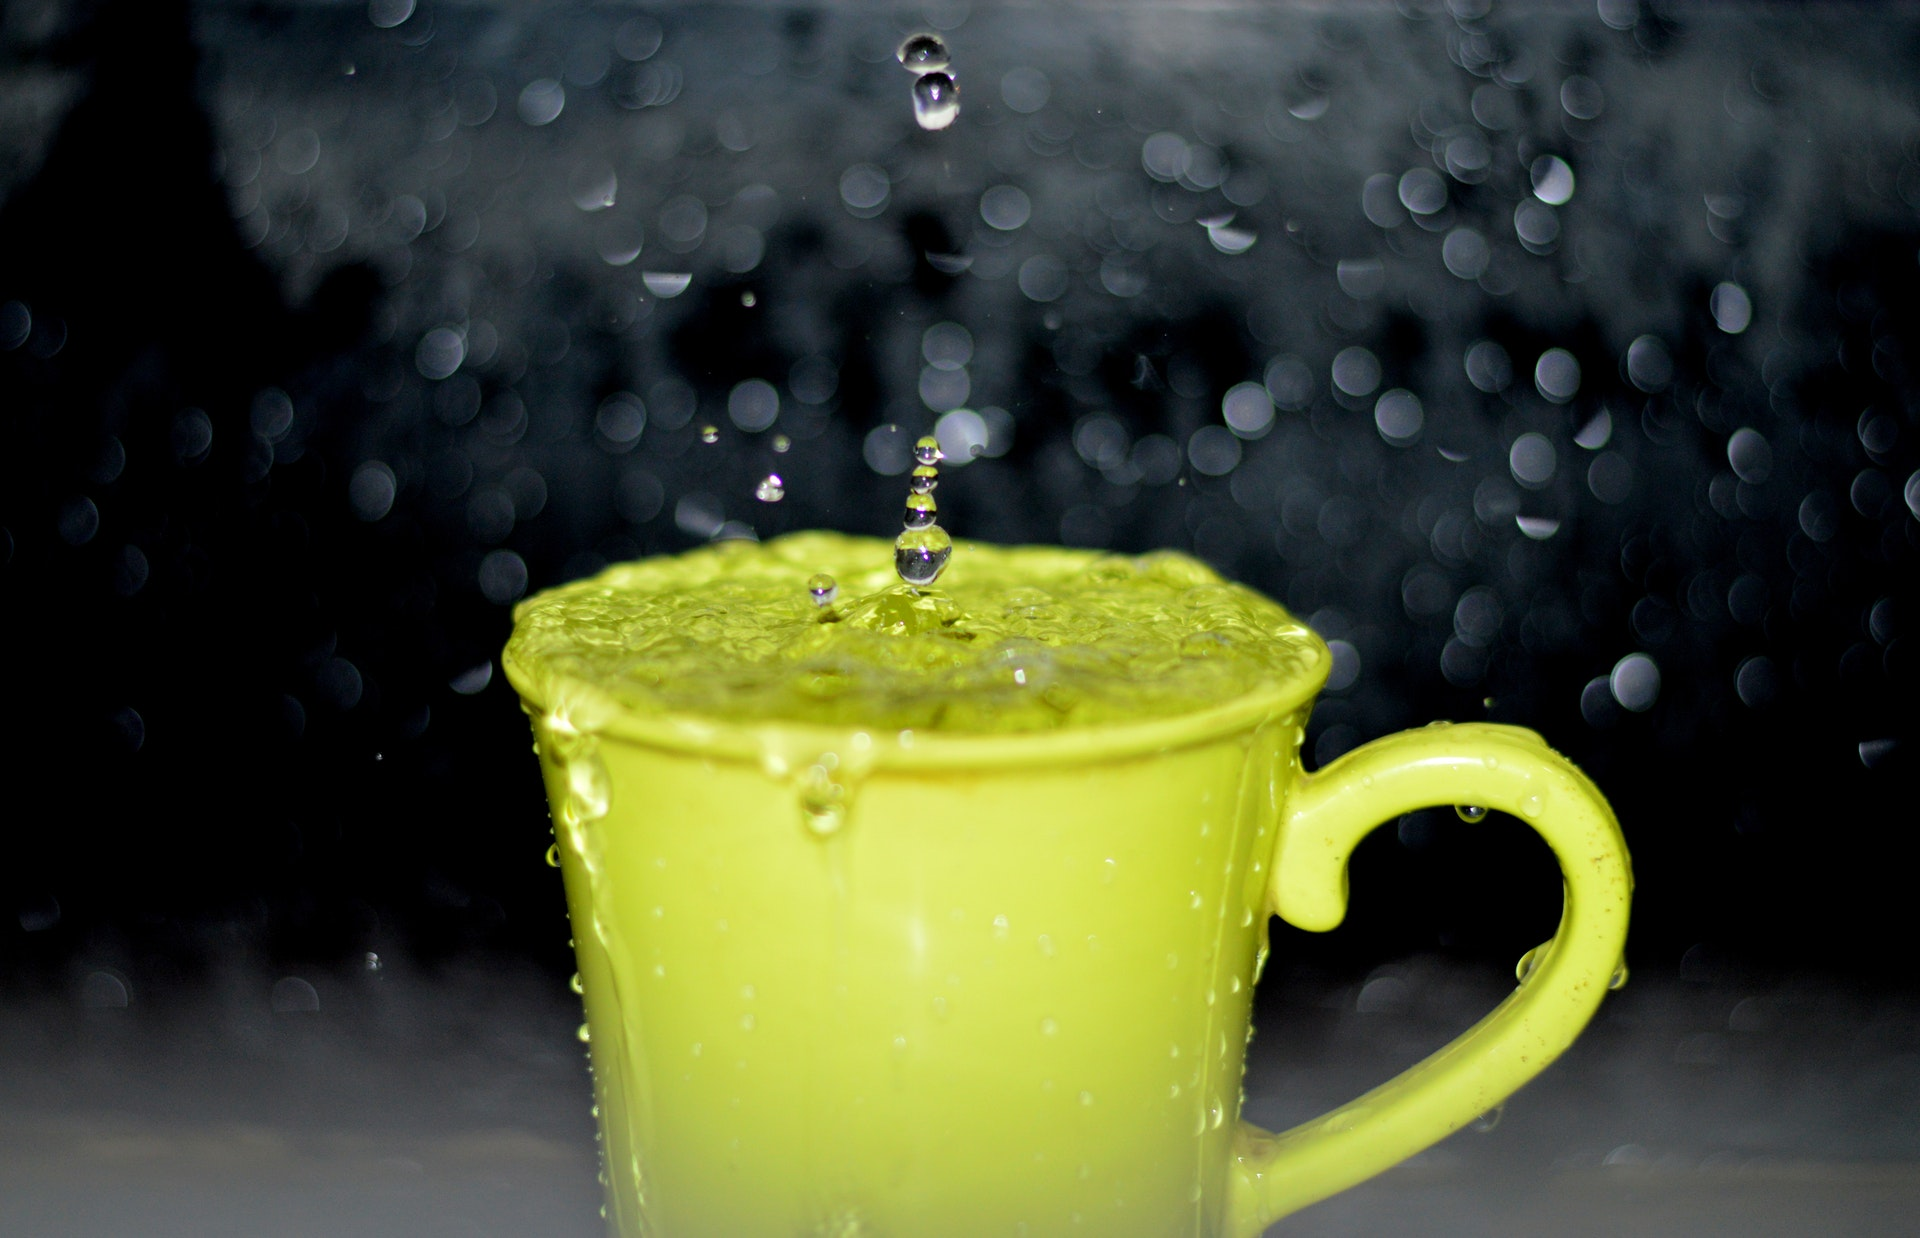 Green cup overfilled and spilling